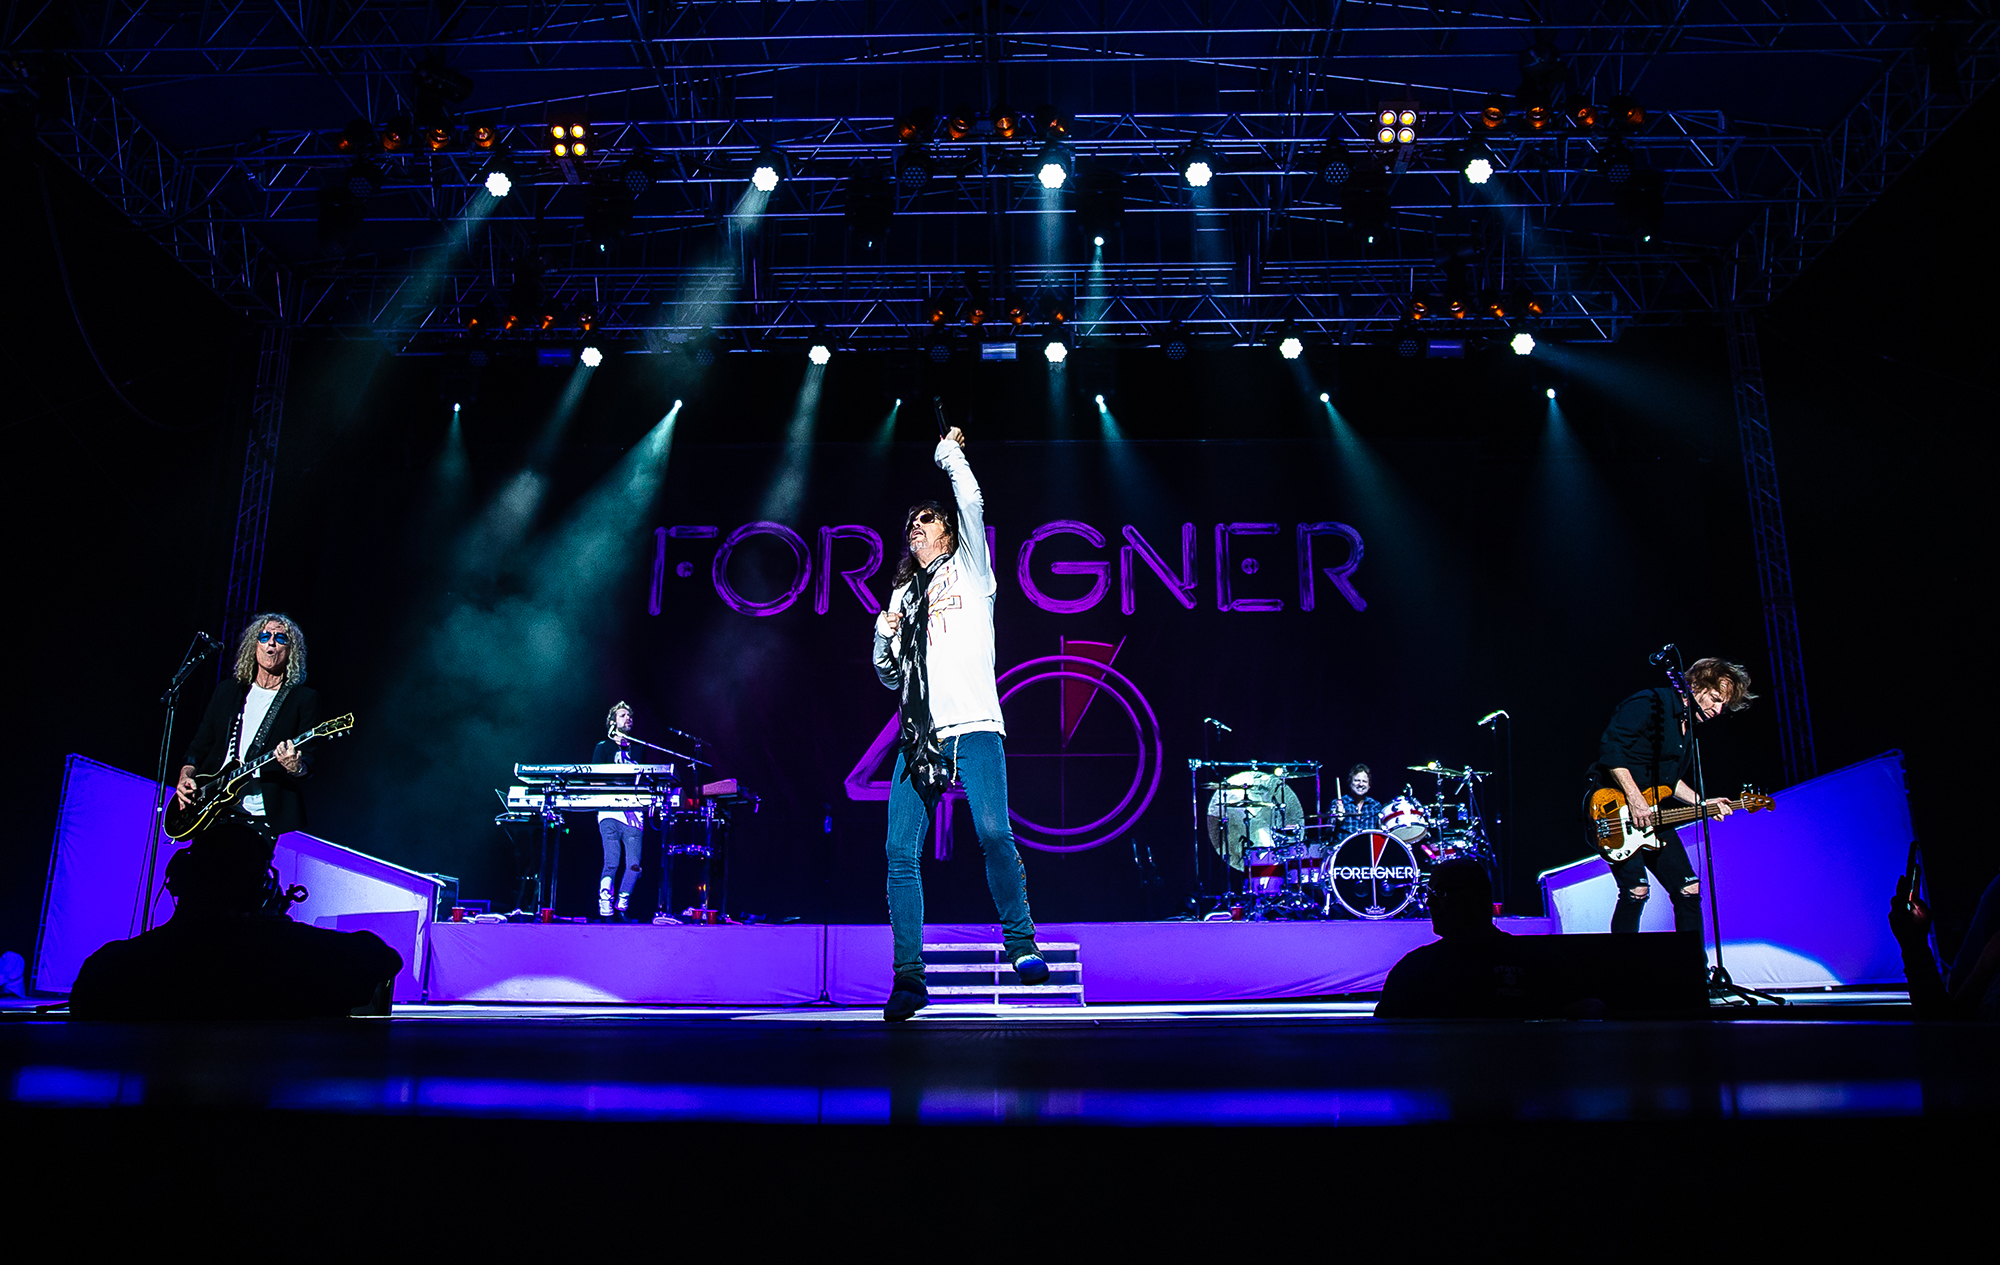 Lead singer Kelly Hansen, center, guitarist Bruce Watson, left, and bassist Jeff Pilson, right, perform with Foreigner as the band plays on the Grandstand Stage during the Illinois State Fair at the Illinois State Fairgrounds, Sunday, Aug. 12, 2018, in Springfield, Ill. [Justin L. Fowler/The State Journal-Register]